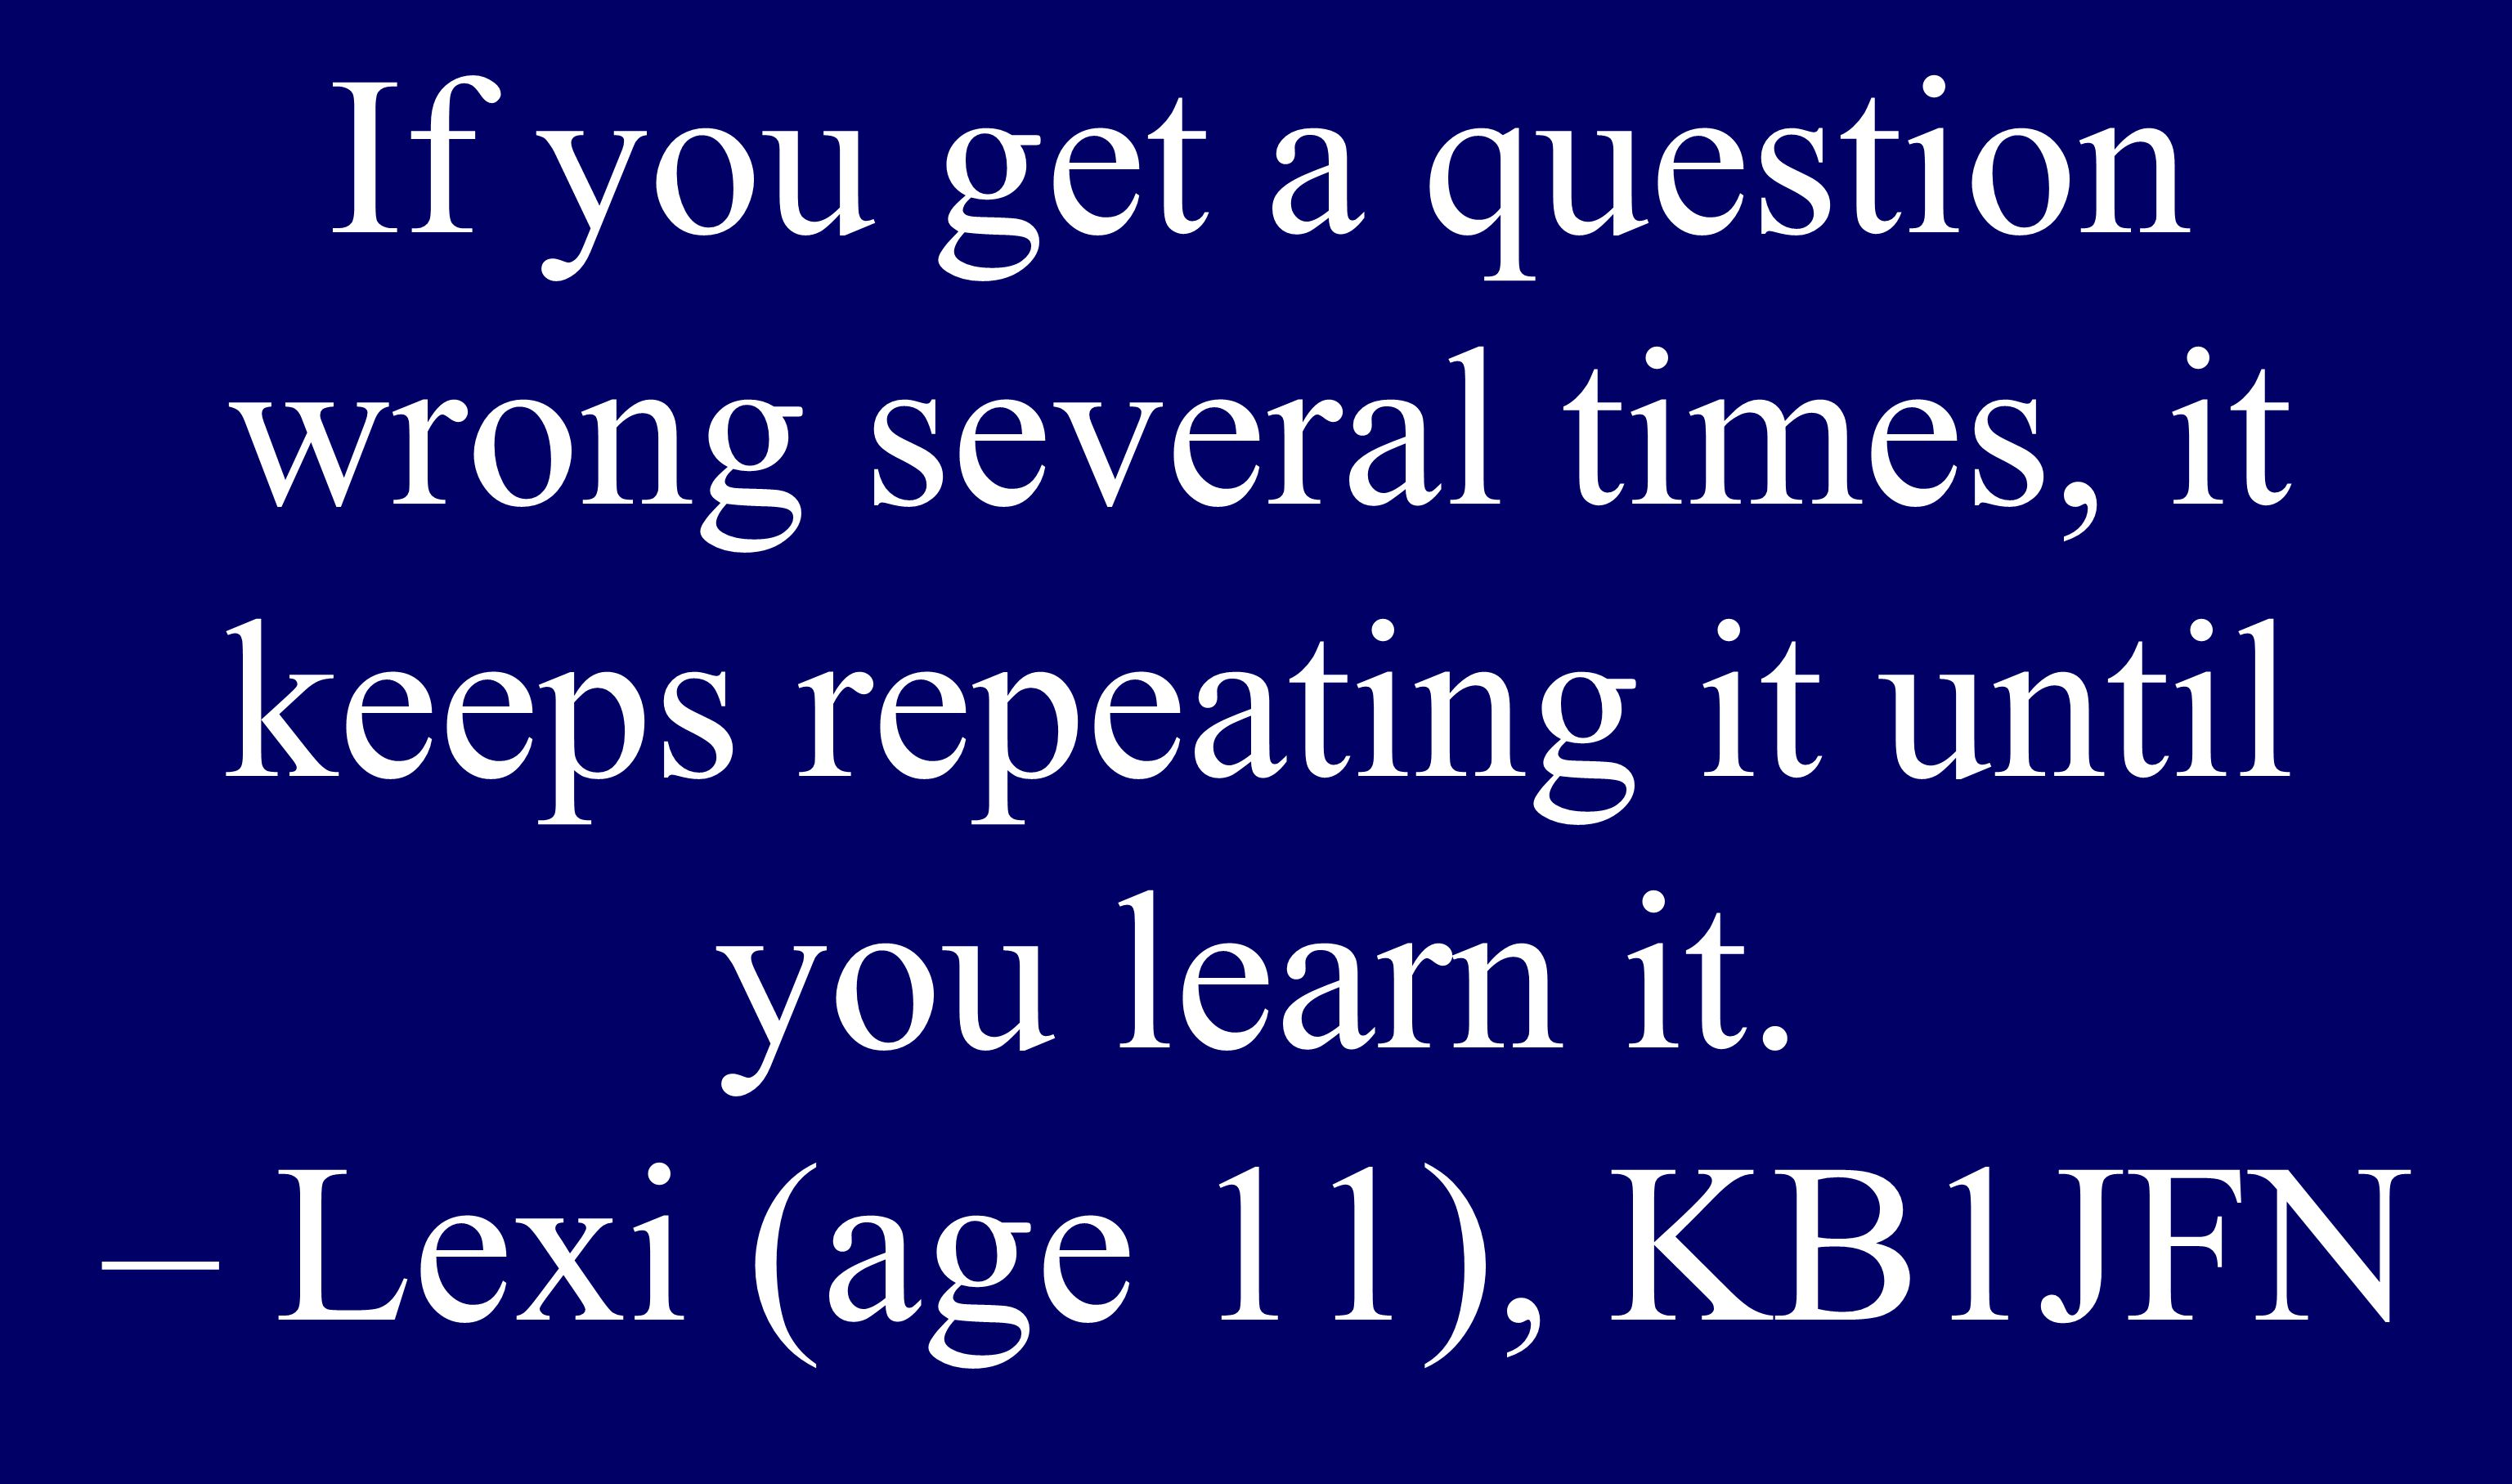 If you get a question wrong several times, it keeps repeating it until you learn it.